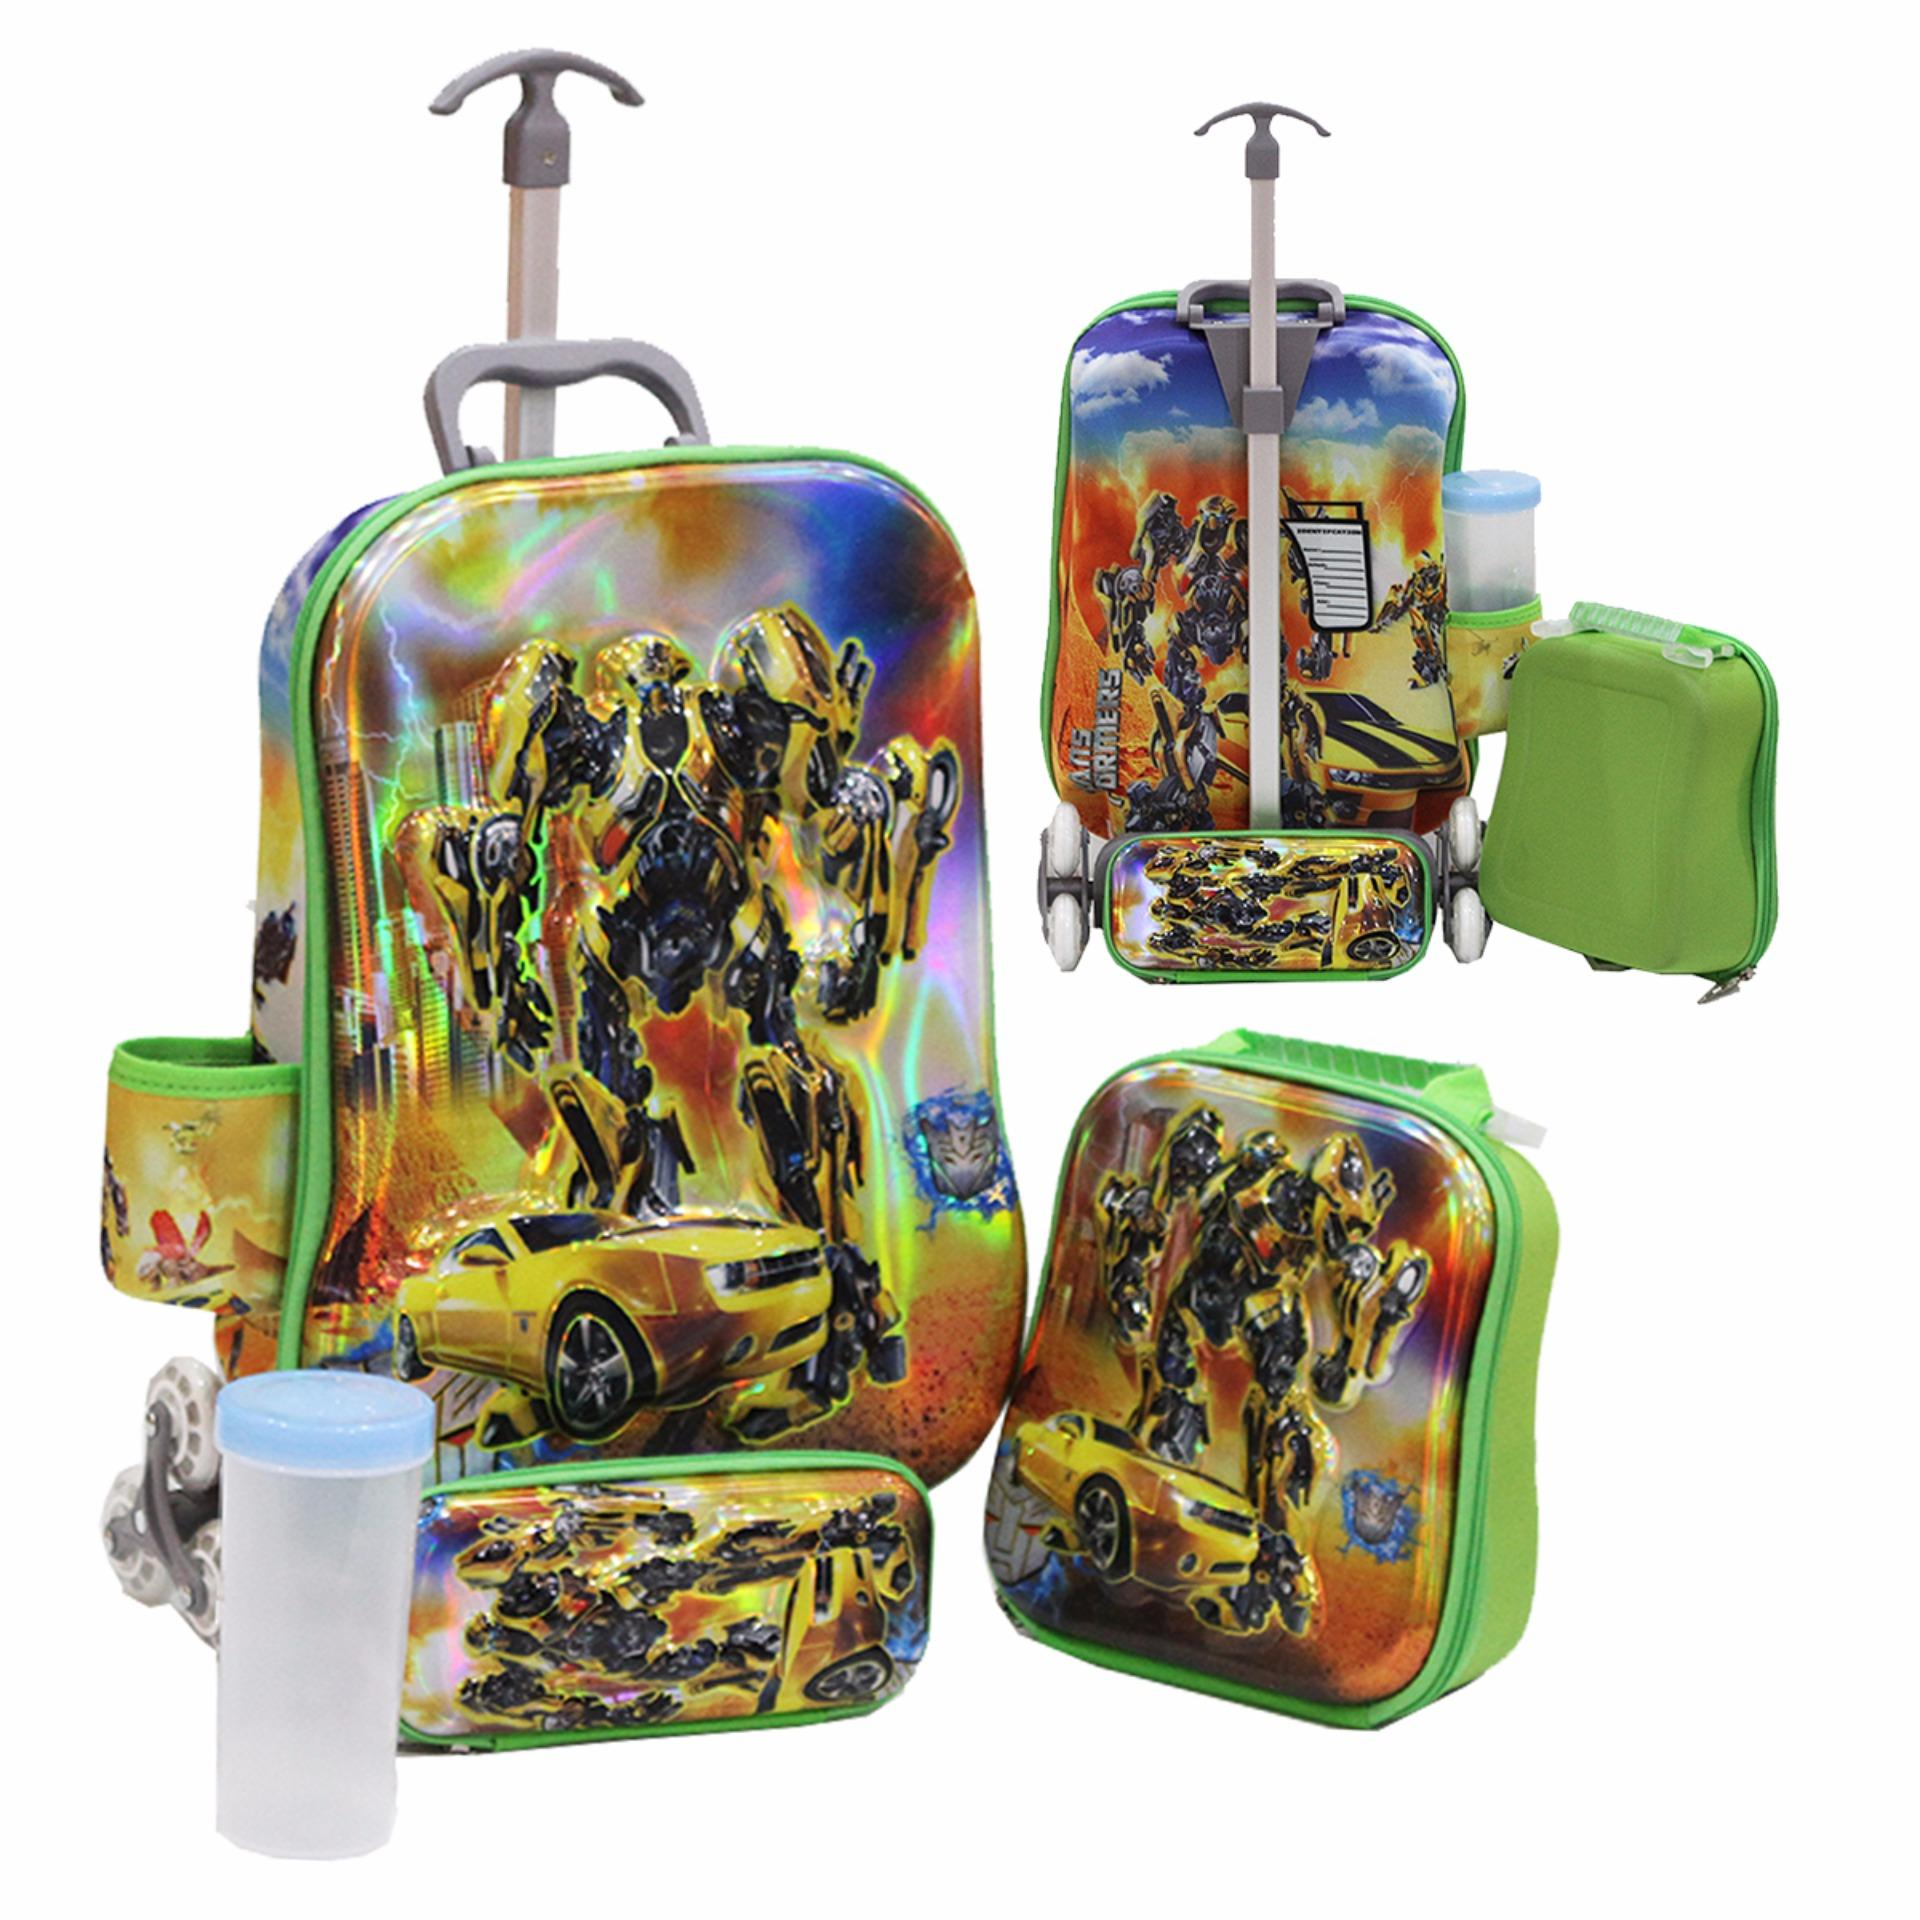 Spesifikasi Onlan Transformers Bumble Bee 6D Timbul Anti Gores Tas Anak 4In1 Set 6 Roda Import Baru